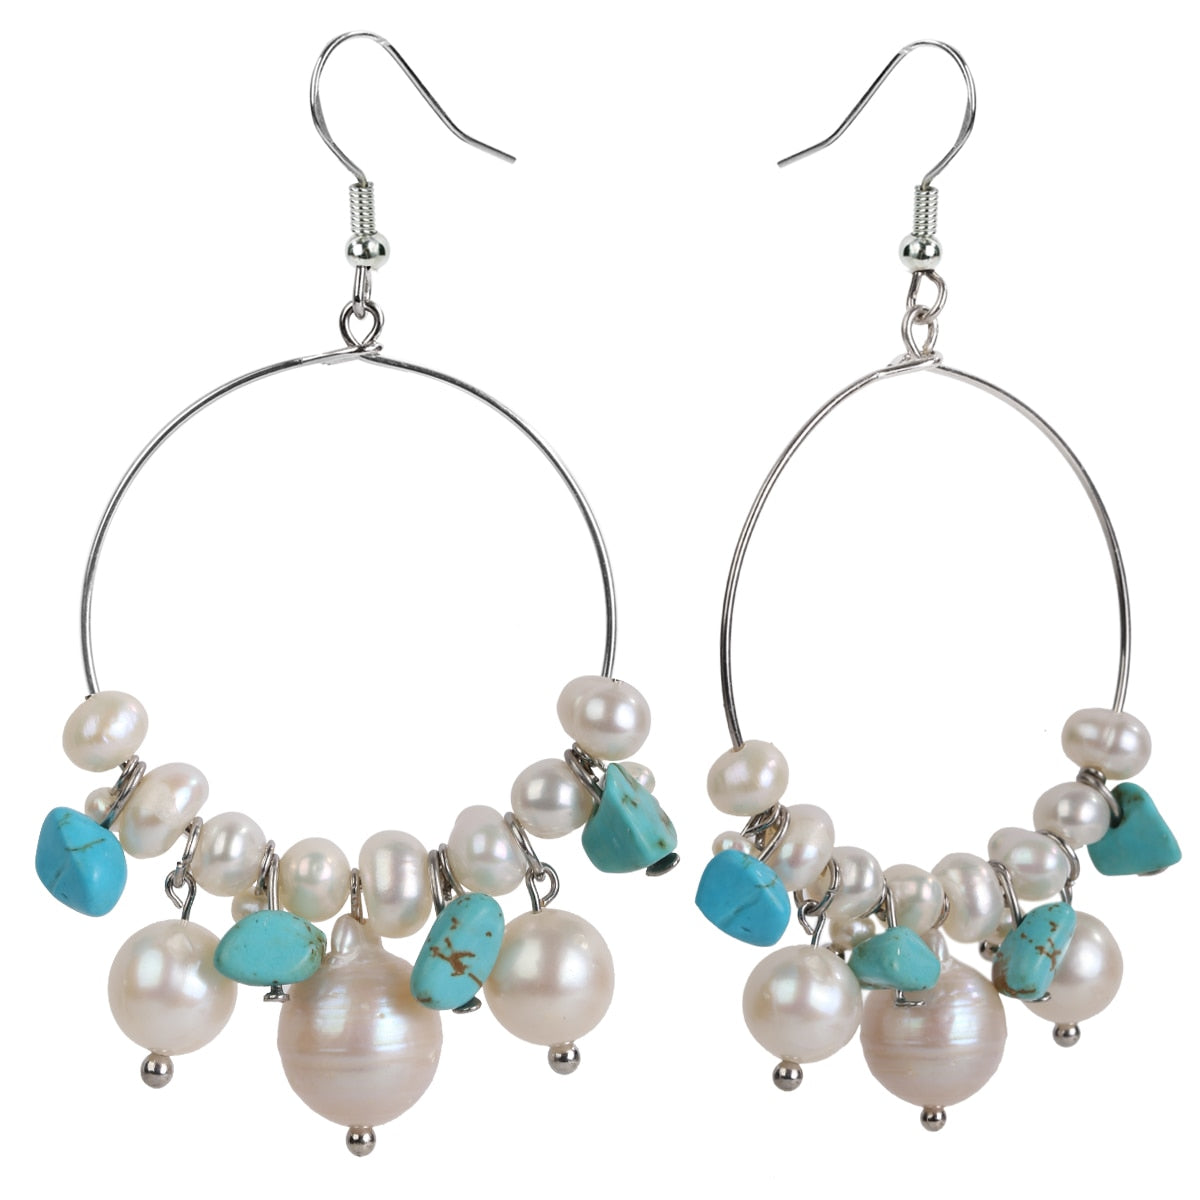 Handmade 925 Sterling Silver Freshwater Pearl & Natural Turquoise Hoop Earrings - Dazzled Jewels Fashion Jewelry and Accessories